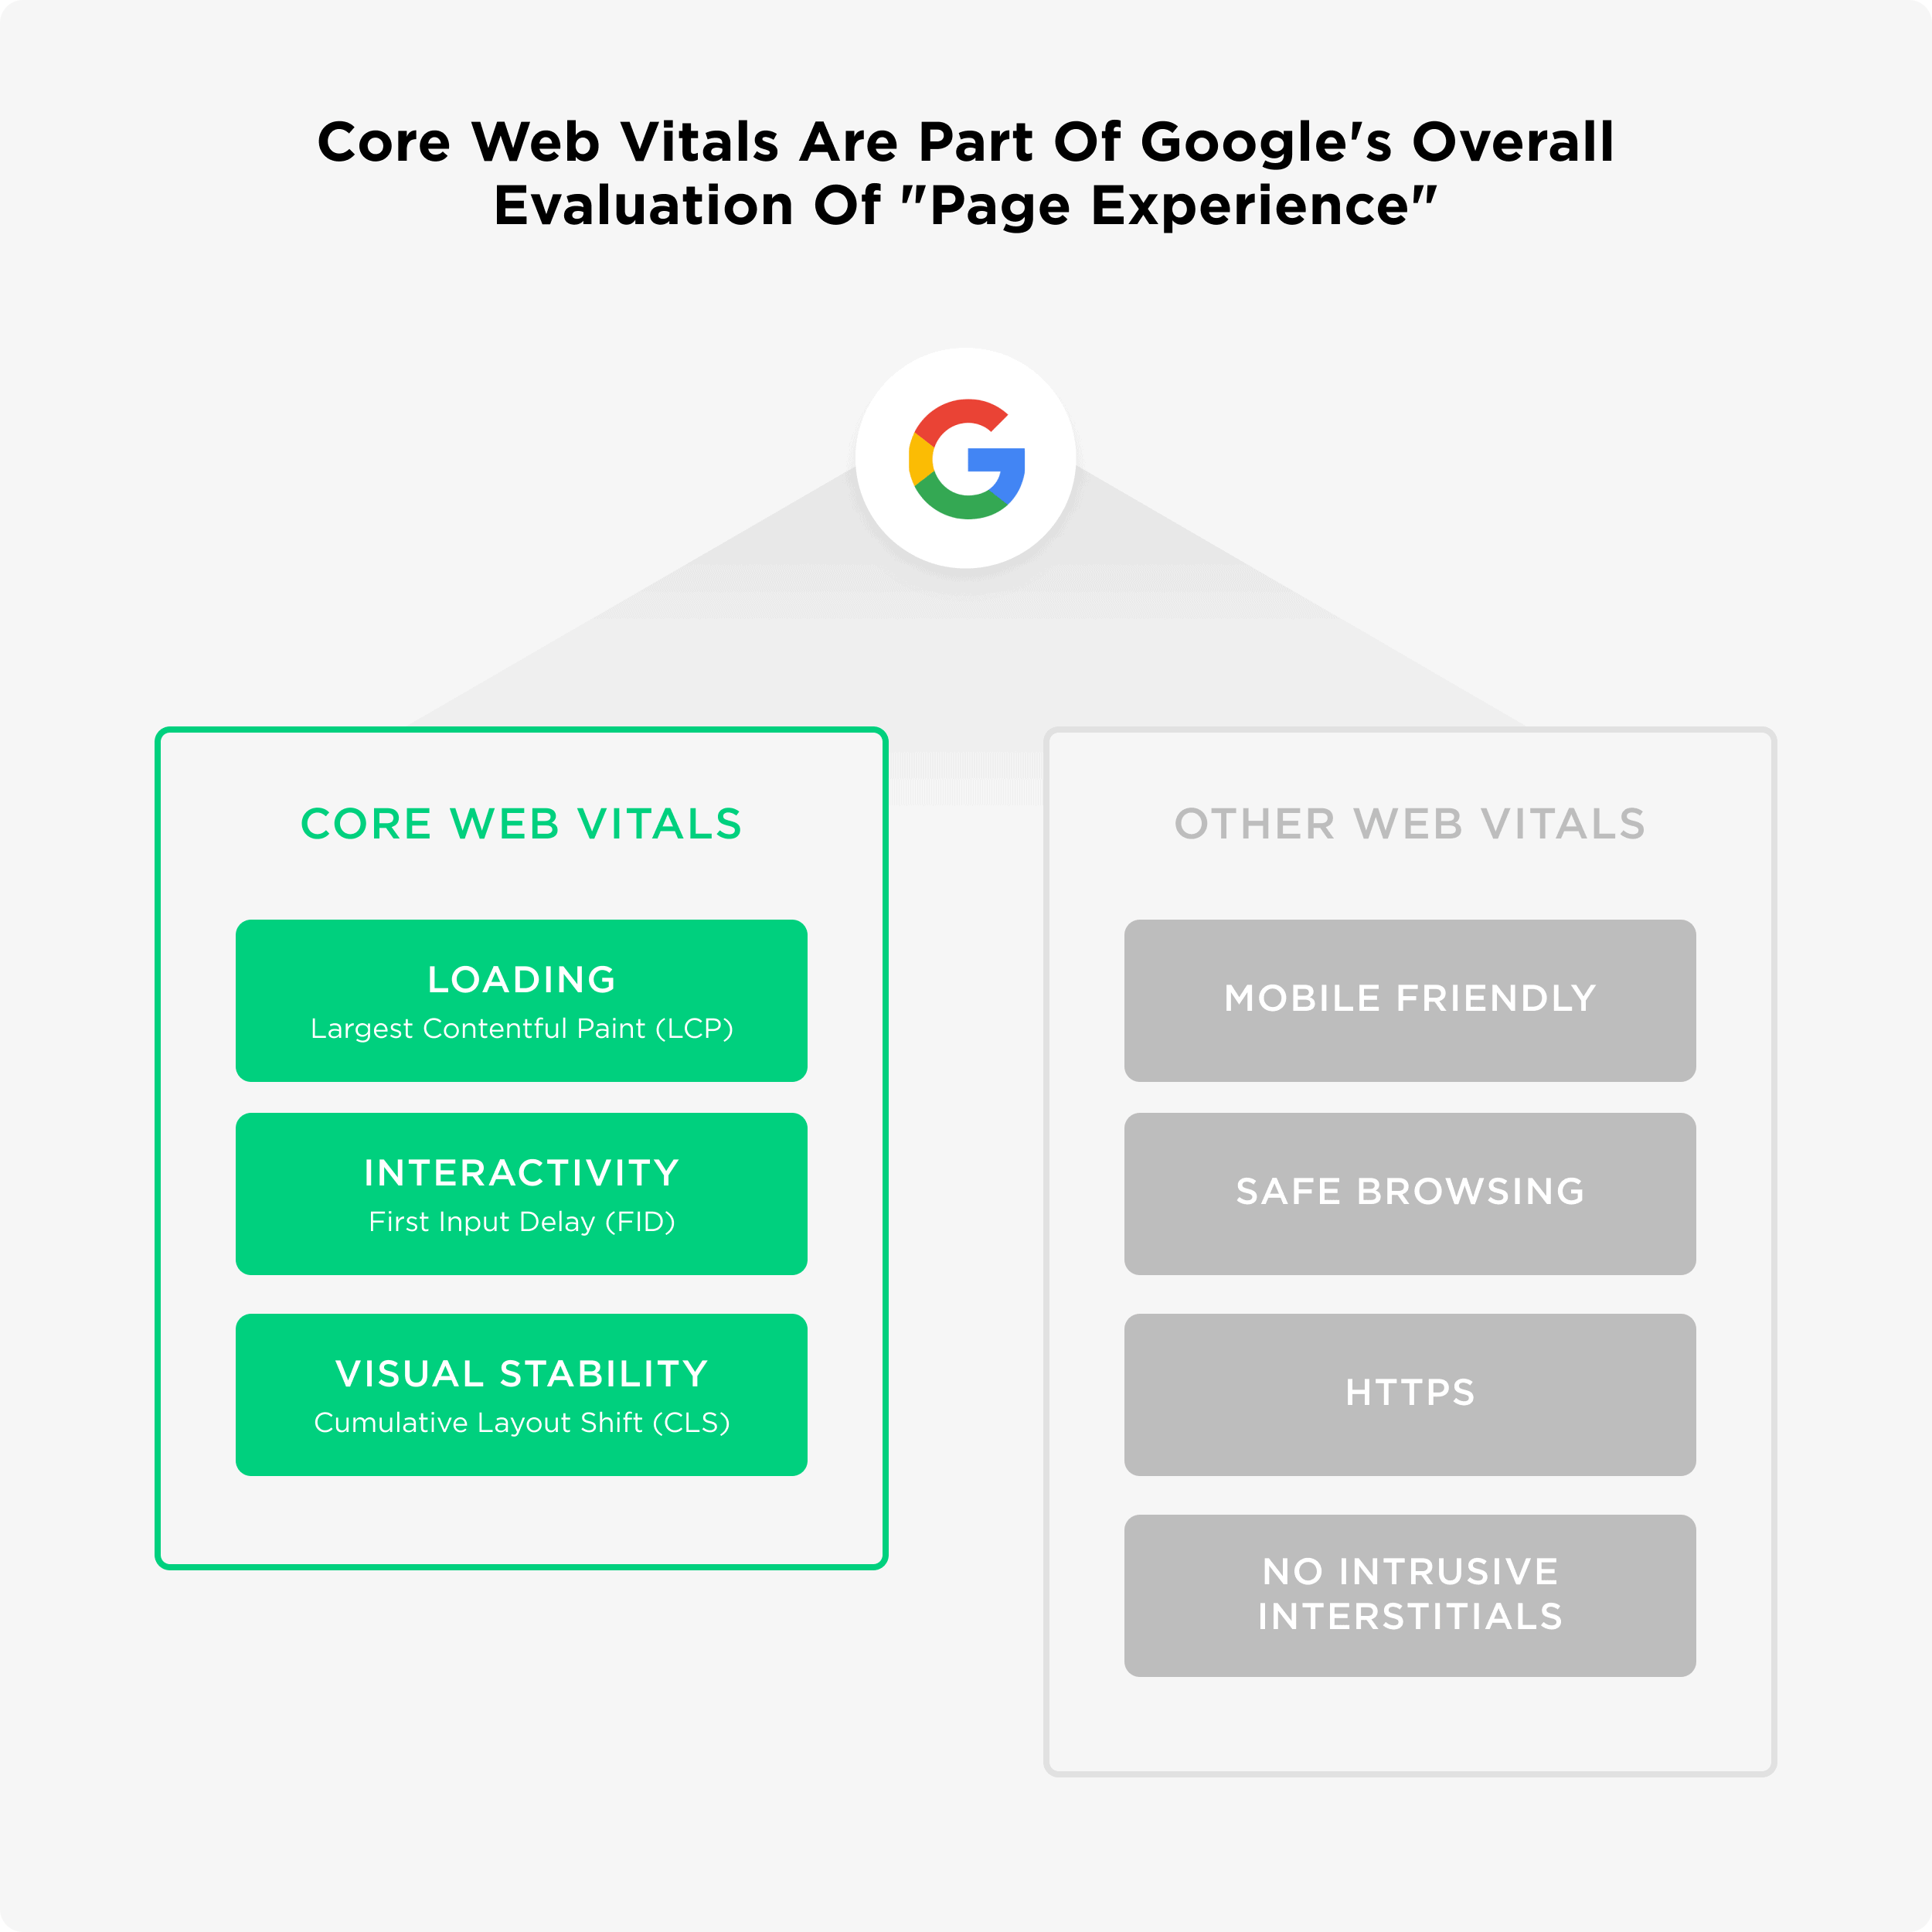 """Core web vitals are part of Google's overall evaluation of """"page experience"""""""